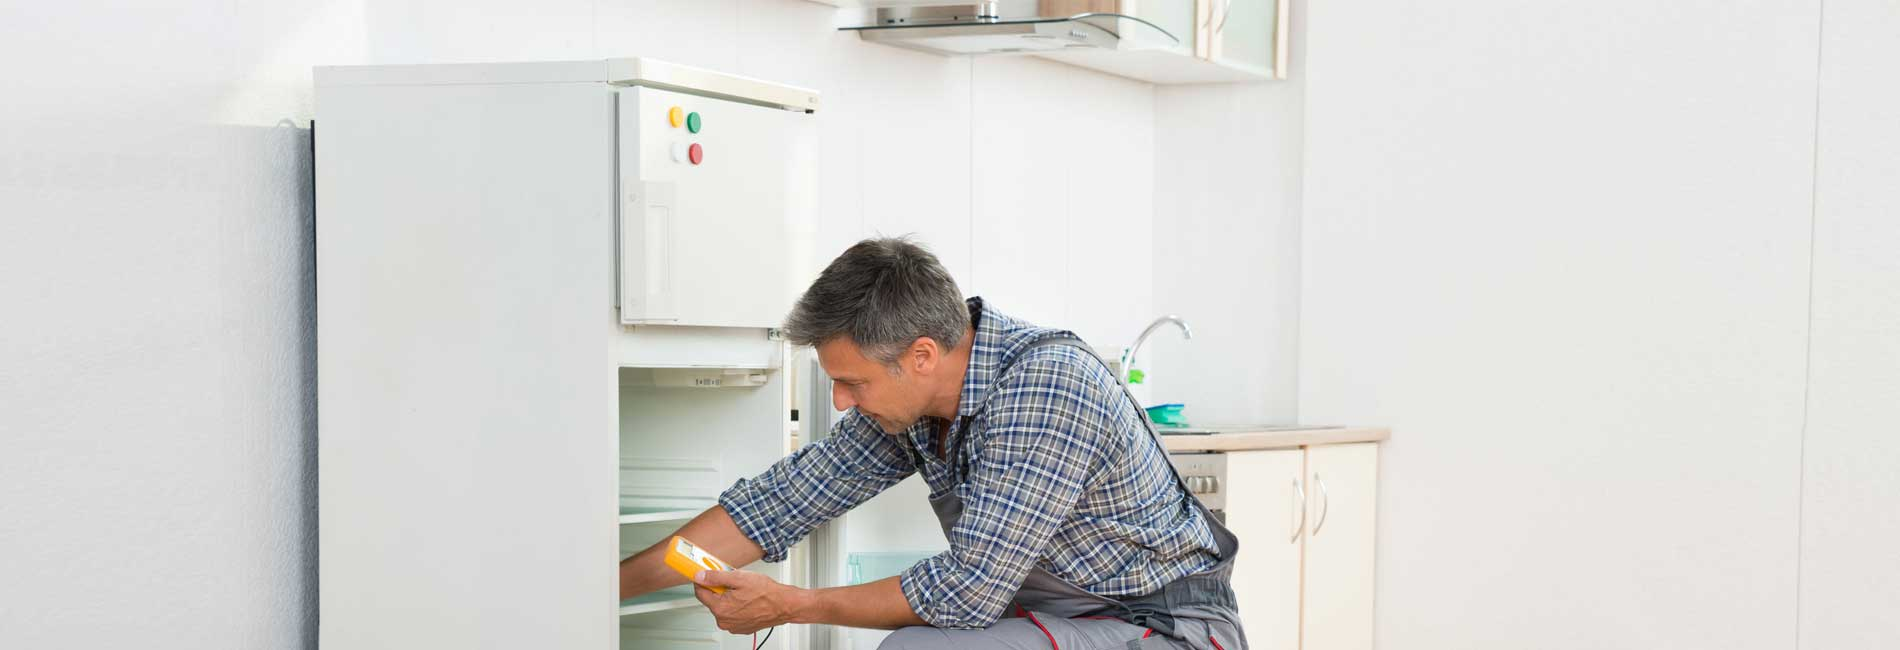 Fridge Repair in Kotturpuram